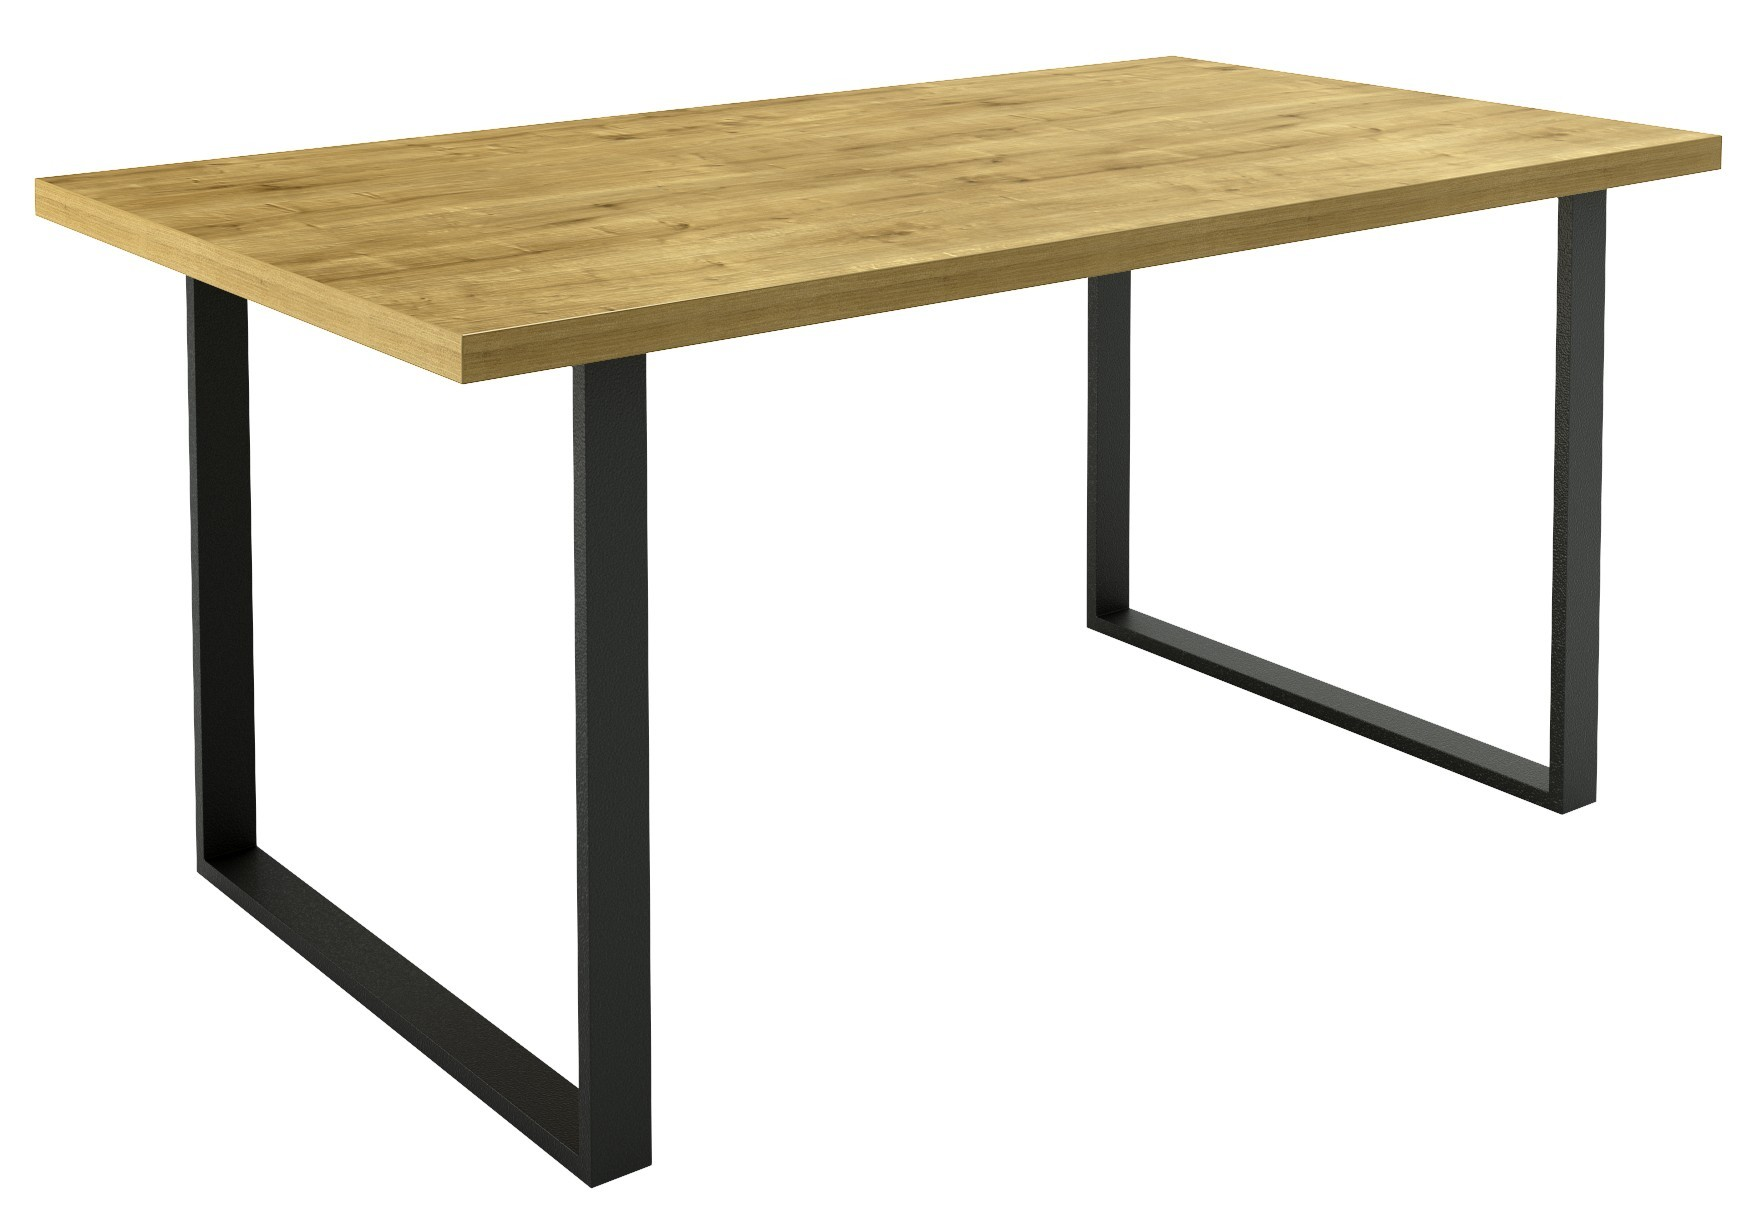 Chic pied de table renaa conception - Pied de table de bar ...